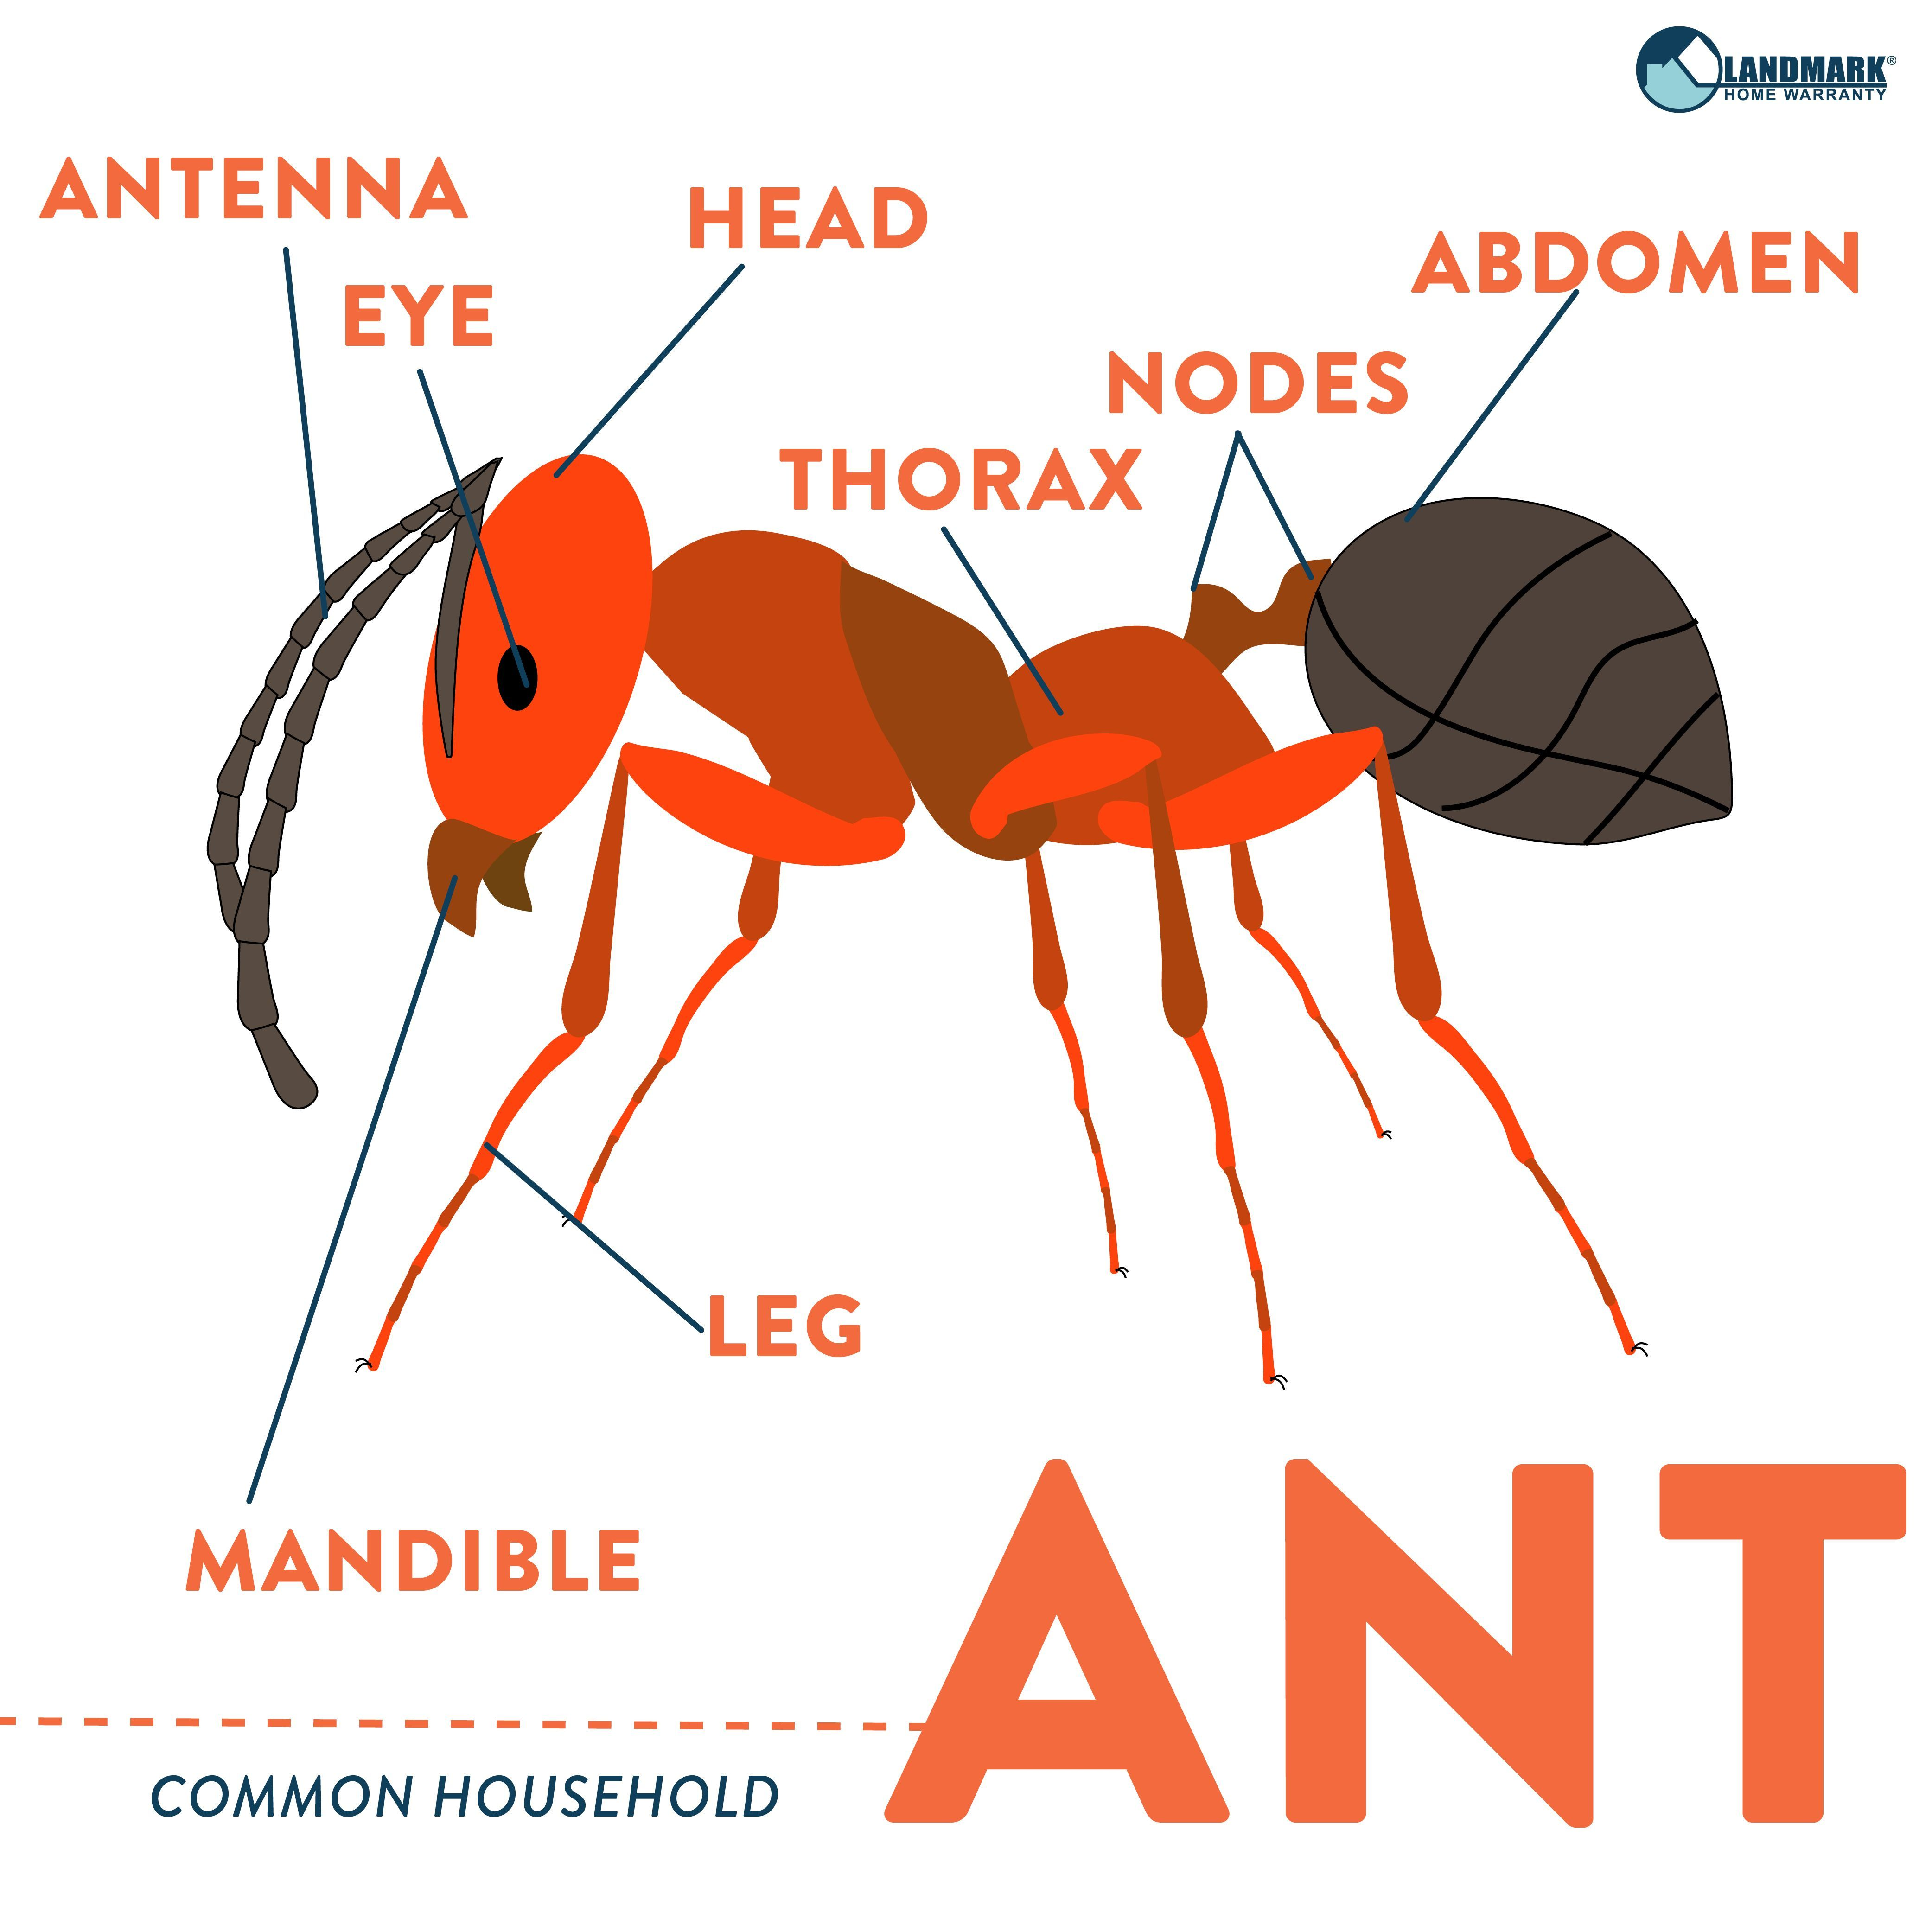 What An Ant Looks Like An Ant Diagram In